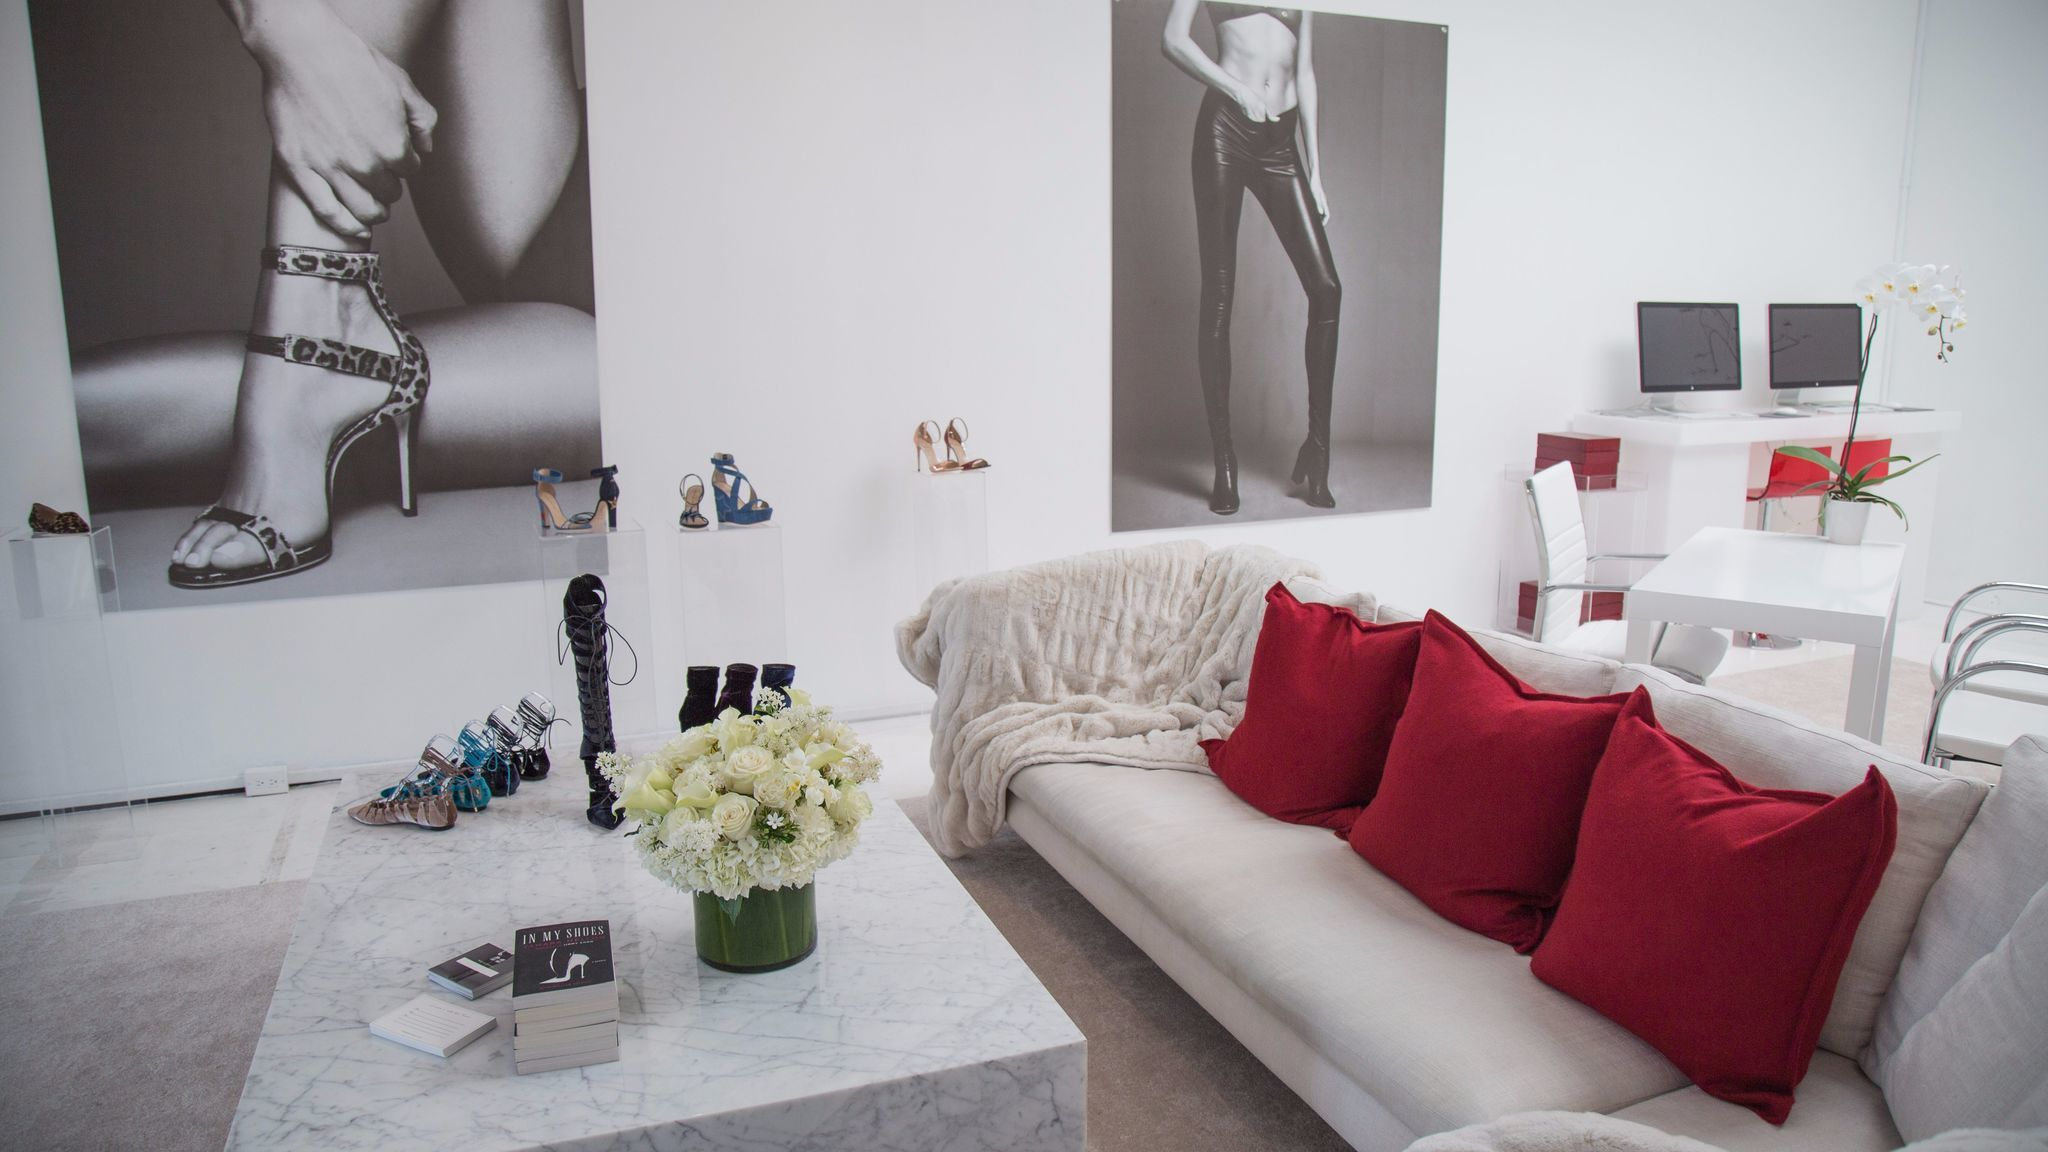 A look inside footwear label Tamara Mellon's temporary store in Los Angeles.